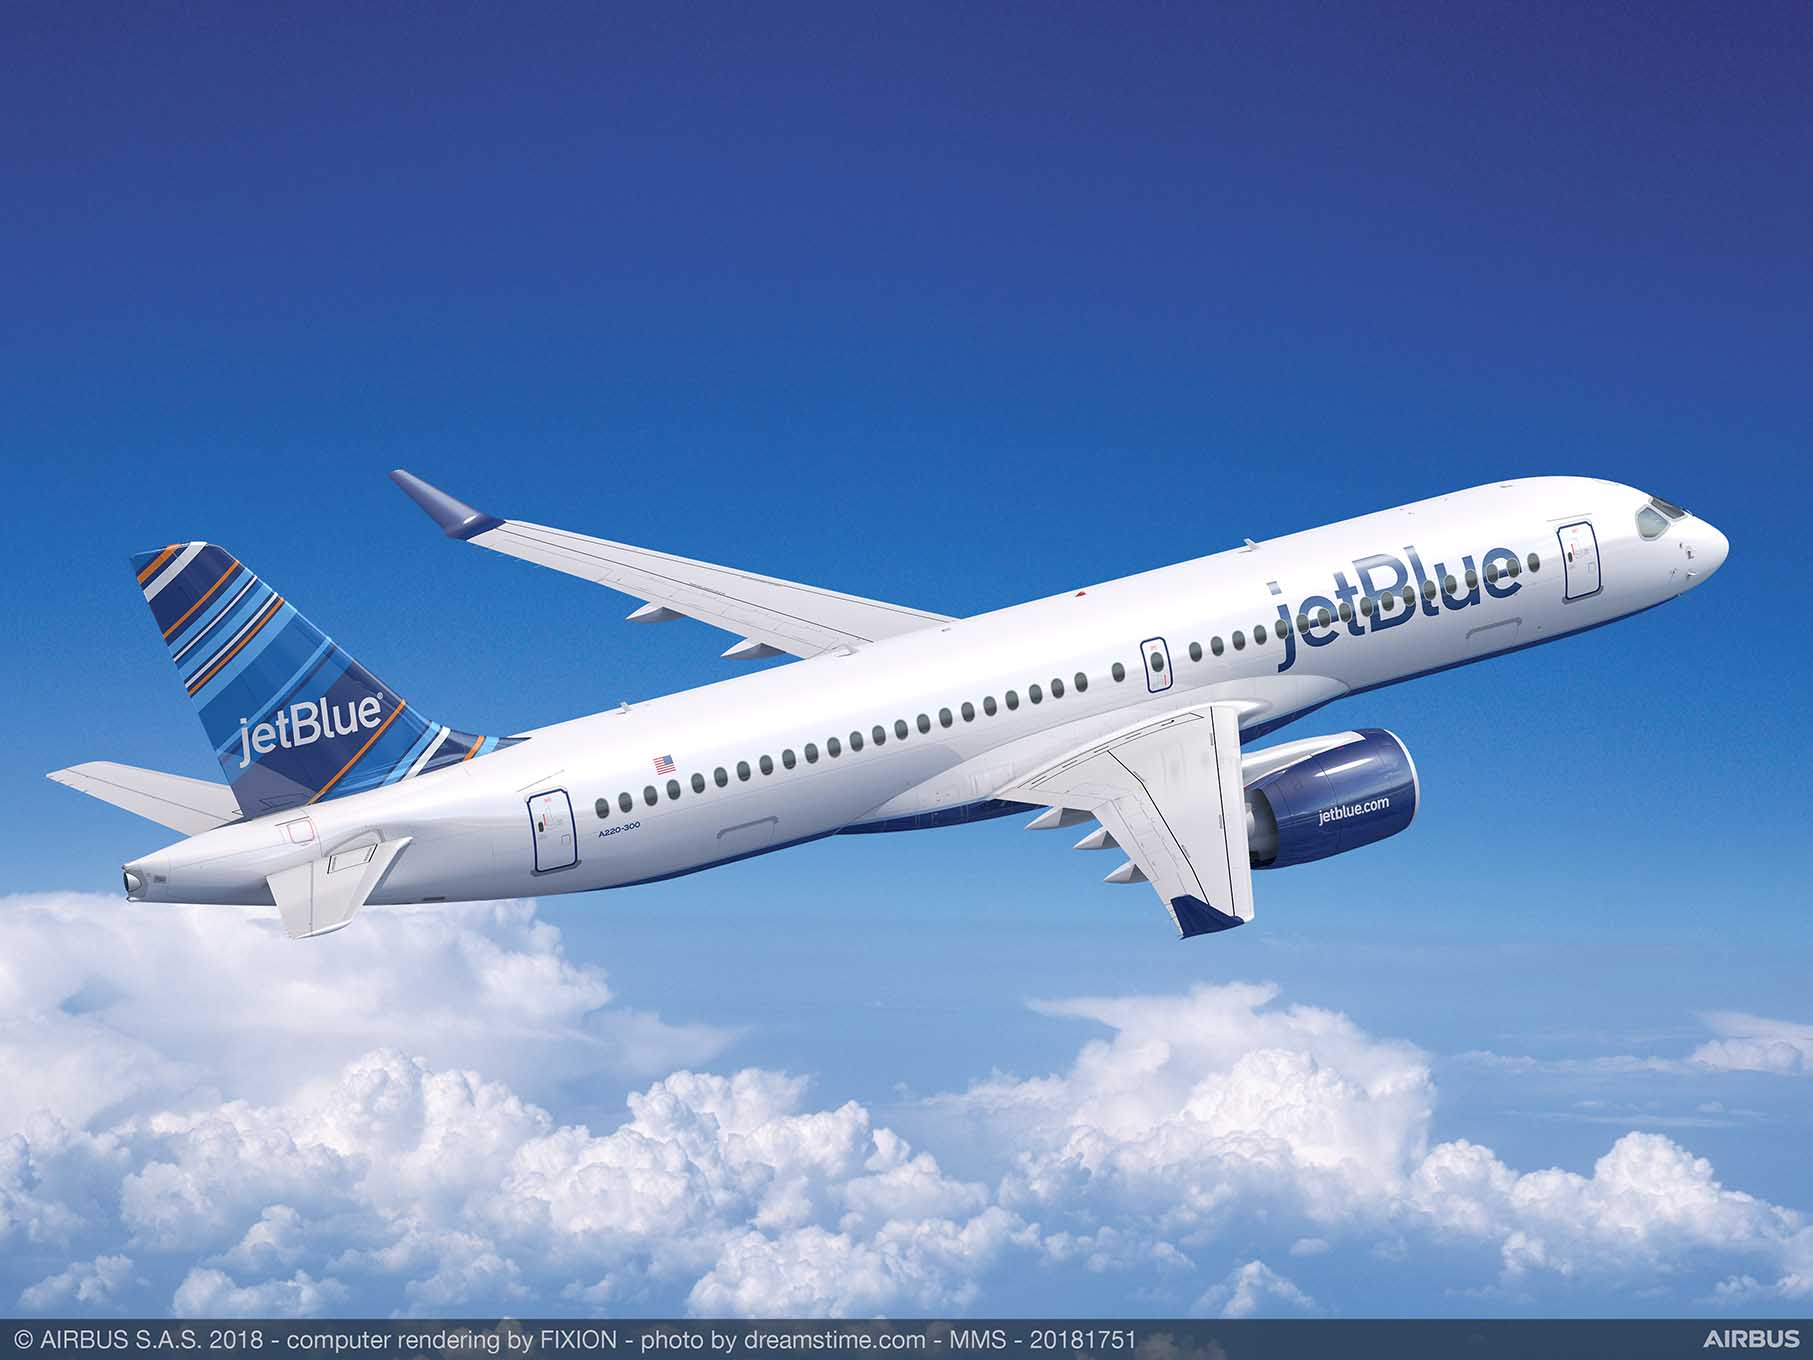 Barbados's New York-Round JetBlue Flights